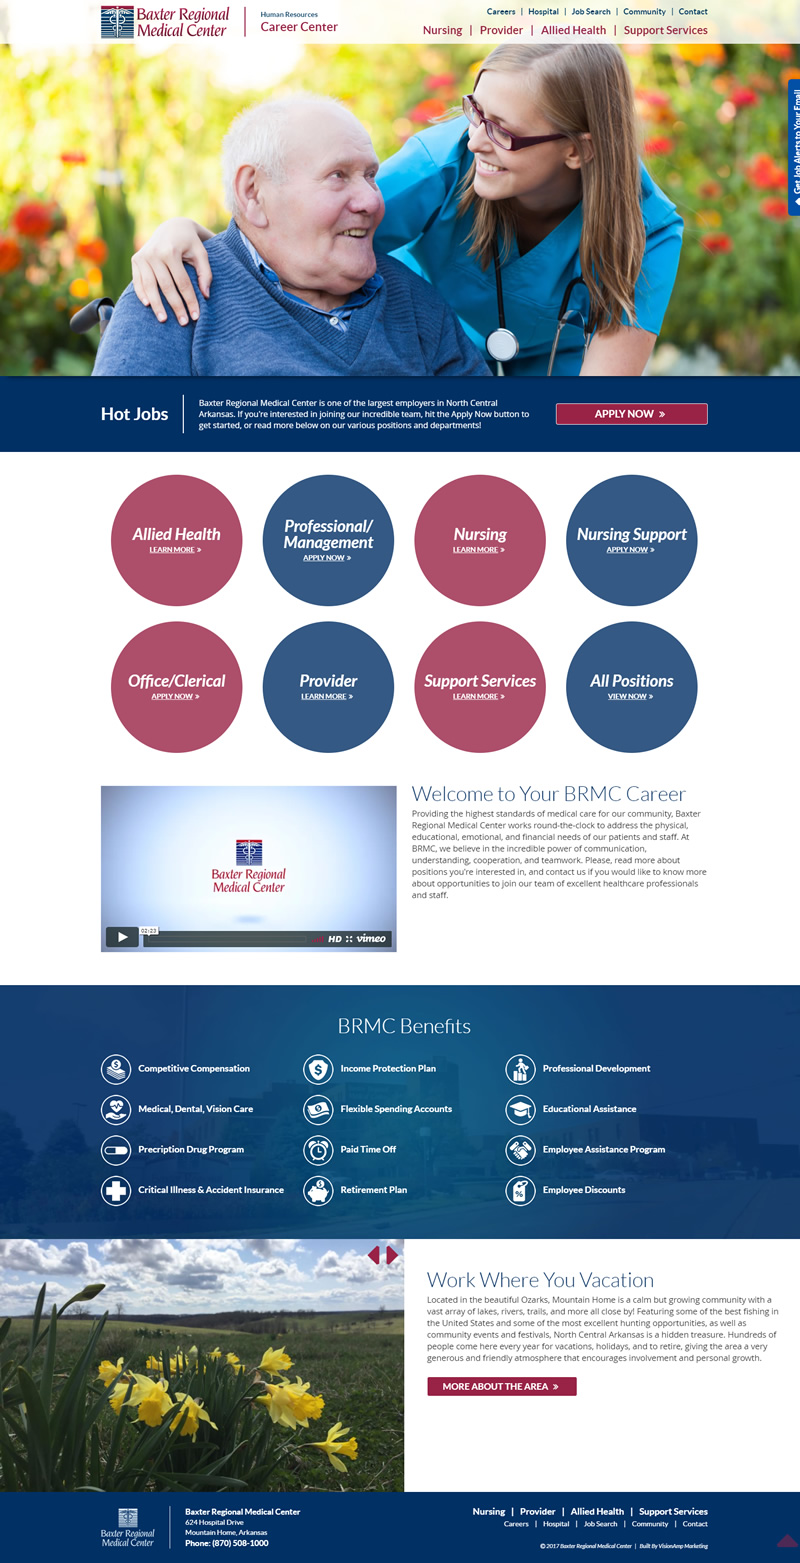 BRMC Career Center Full Web Design Image